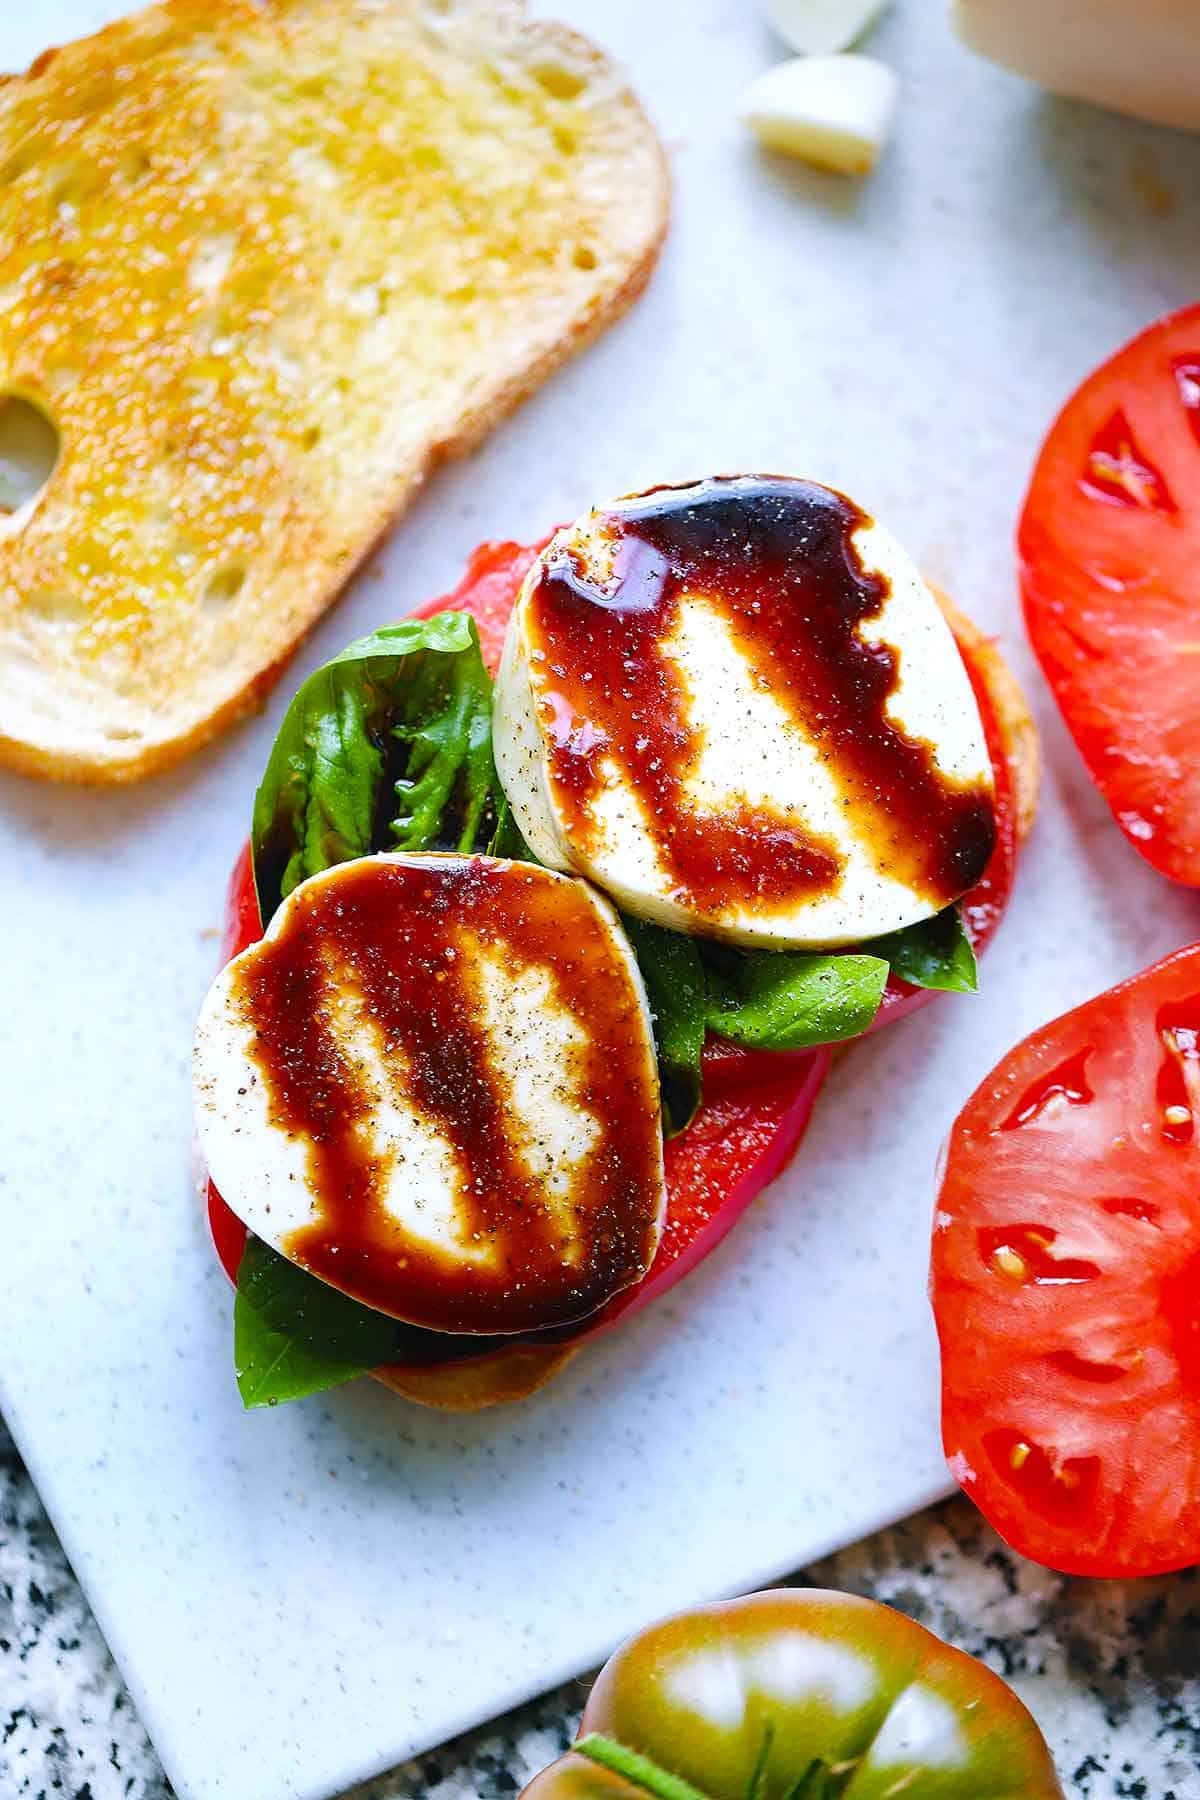 Two slices of bread with mozzarella, tomato, basil, and balsamic glaze topping the bread. More ingredients are in the background.